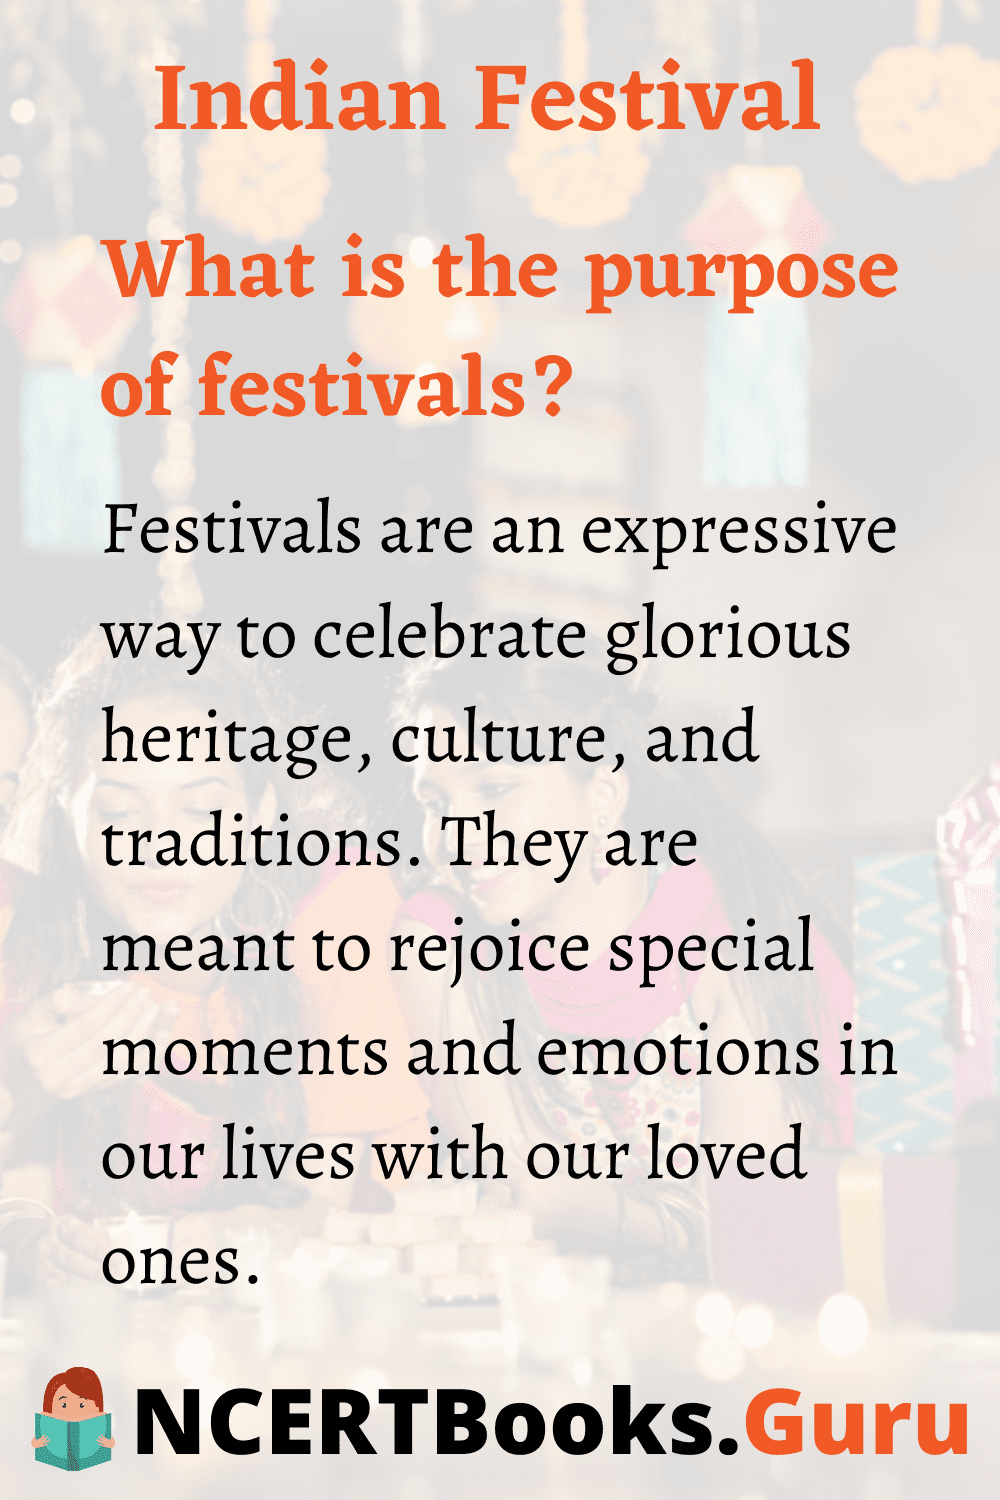 Purpose of Festivals